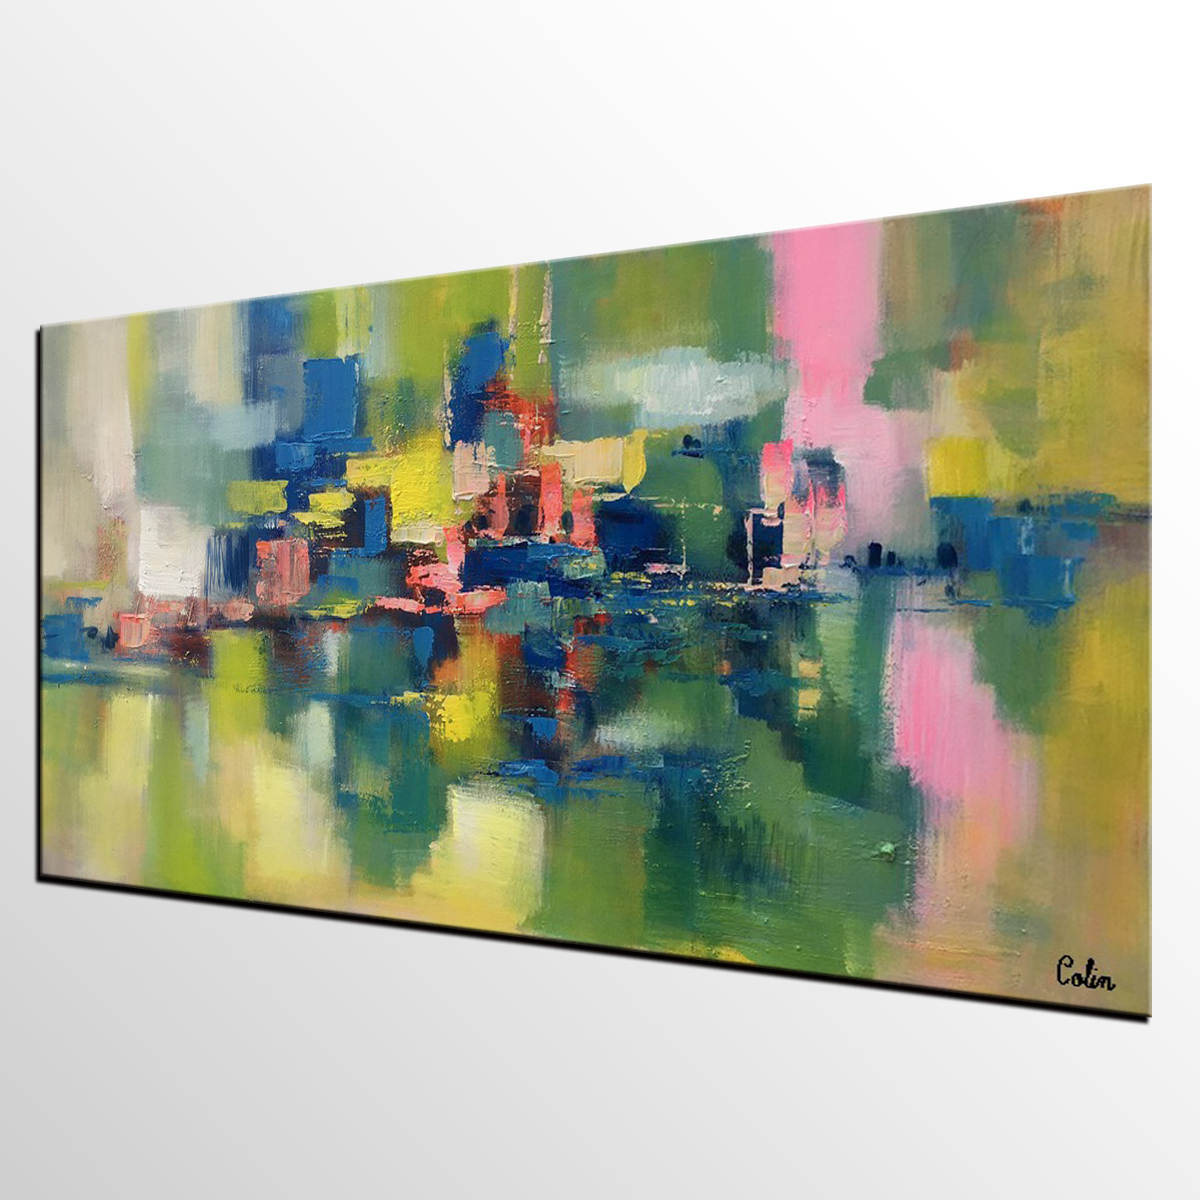 Large Canvas Art, Abstract Painting for Sale, Bedroom Canvas Art, Acrylic Art Painting